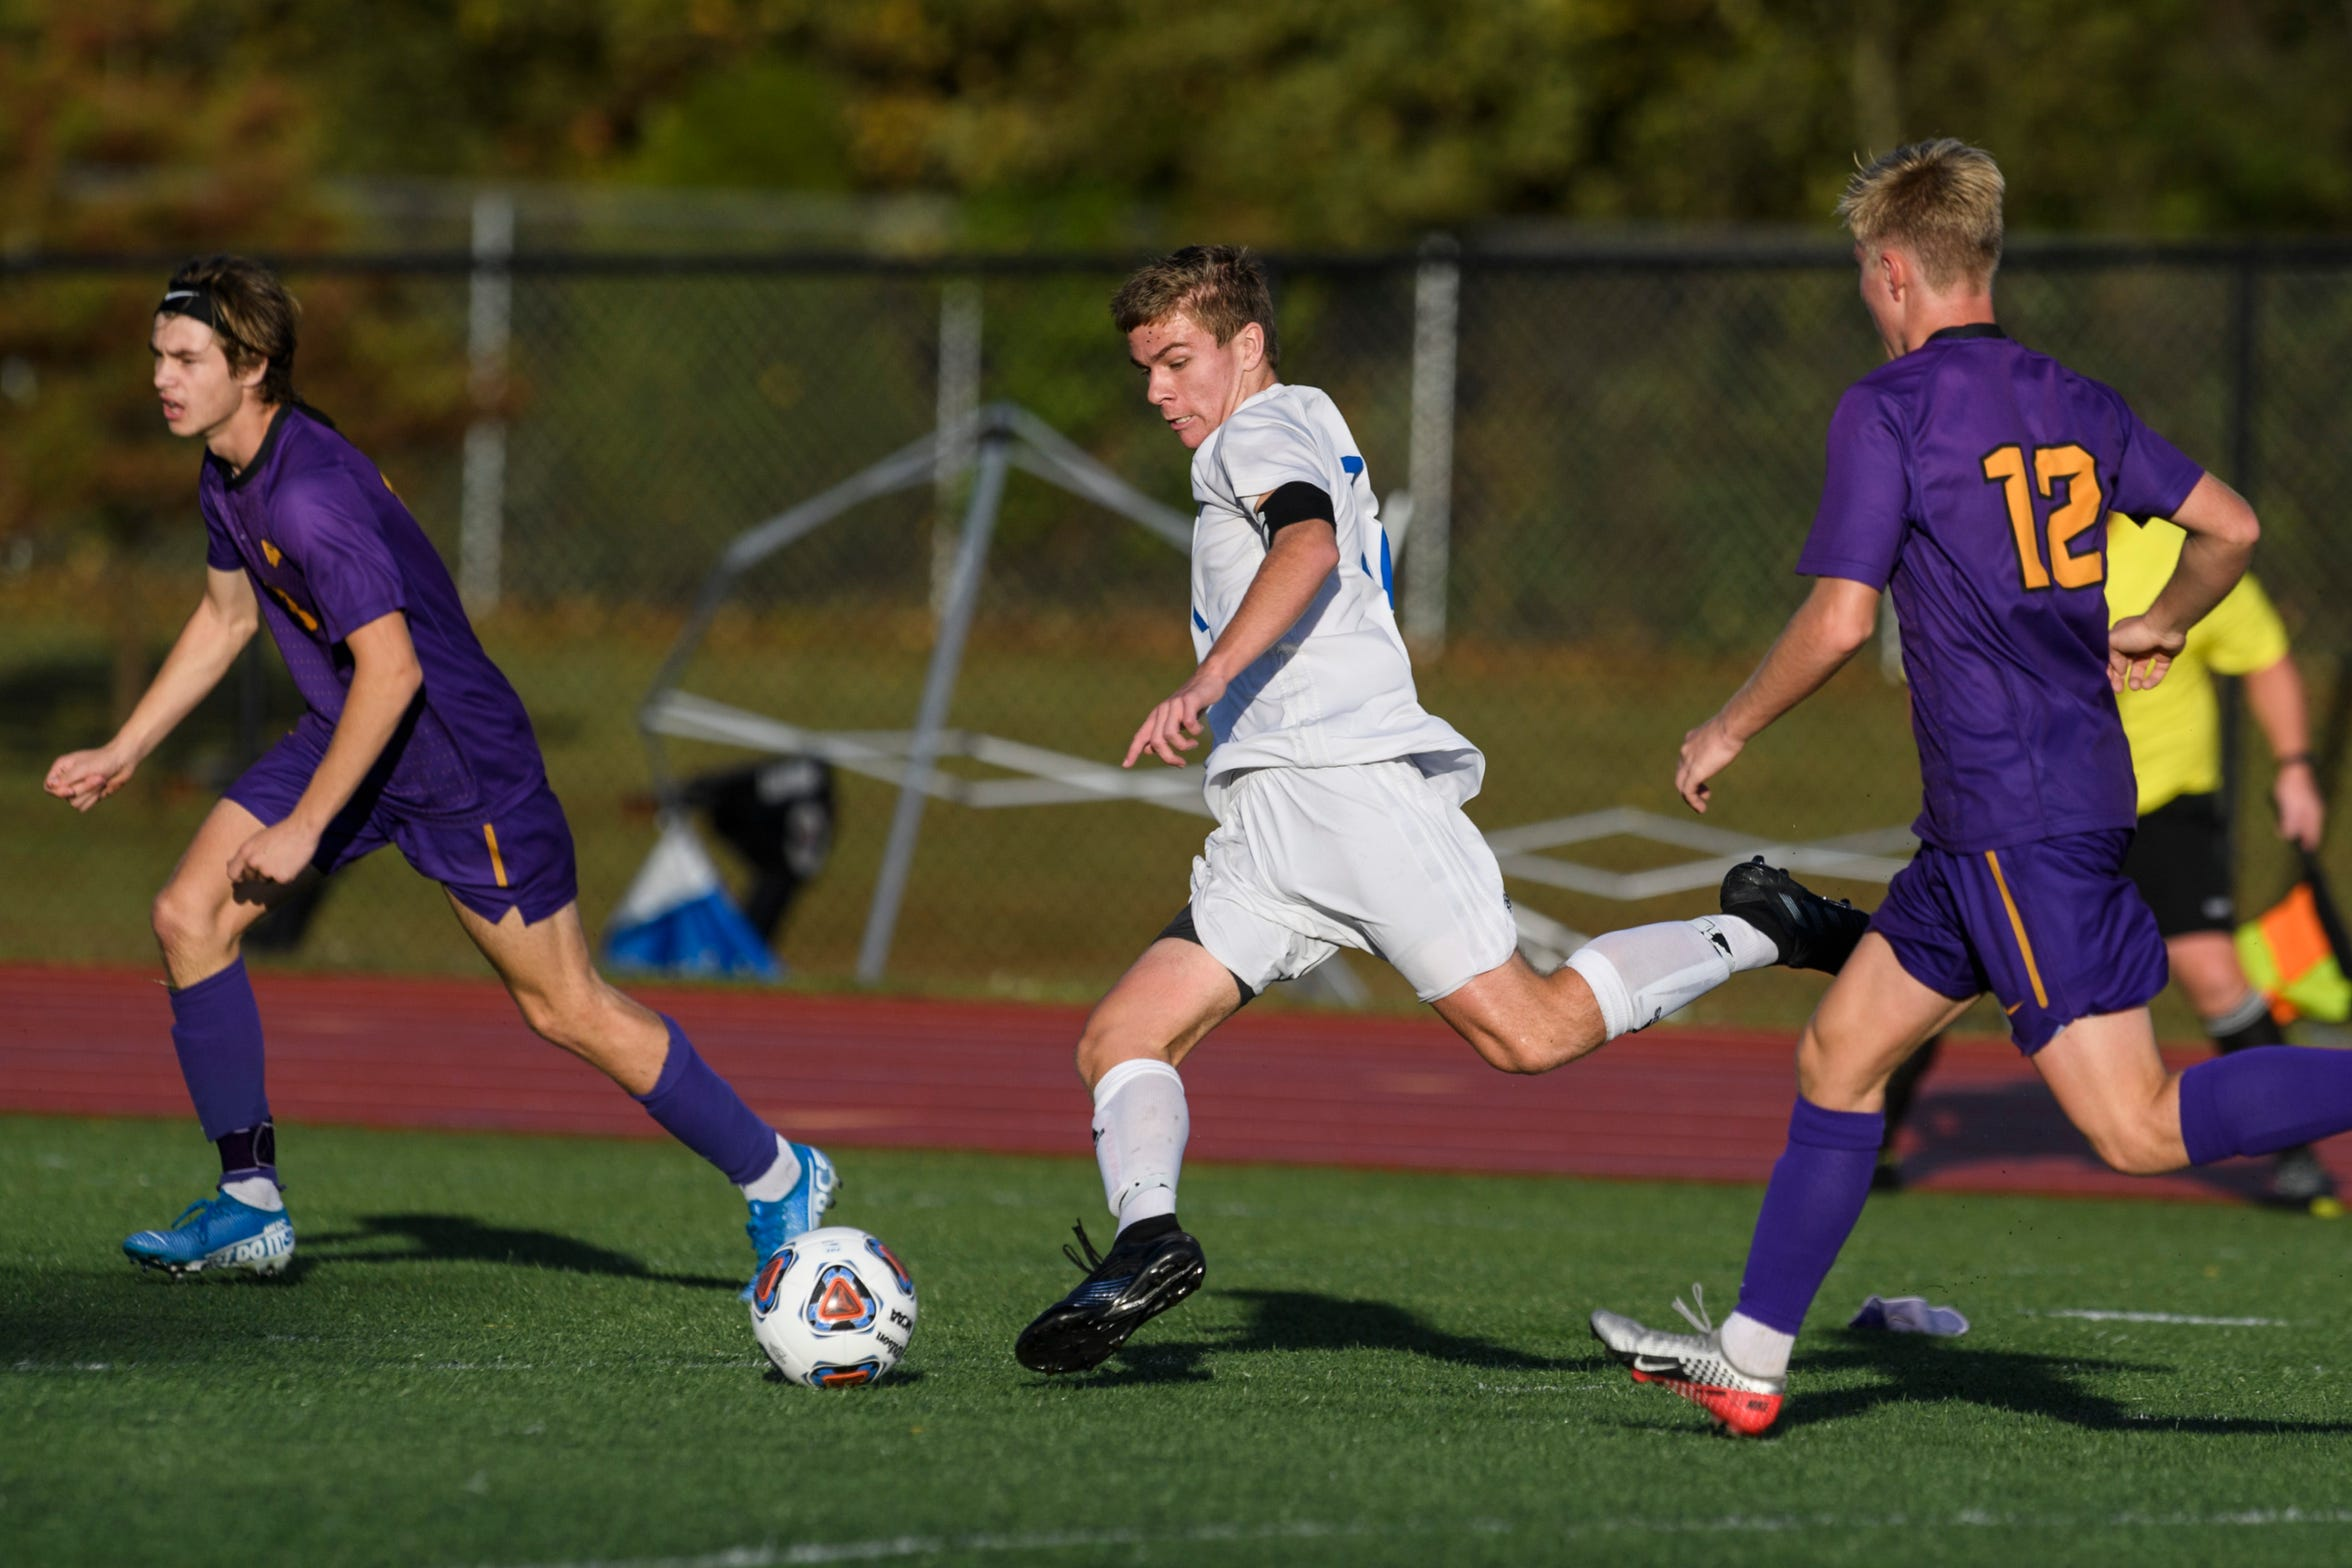 Memorial's Isaac Bennett (11), center, drives the ball down the field during the IHSAA Class 2A semistate matchup against the Guerin Catholic Golden Eagles at Bundrant Stadium in Evansville, Ind., Saturday, Oct. 26, 2019. After double-overtime and a penalty-kick battle, the Tigers defeated the Golden Eagles 3-2 to advance to the 2A state championship.